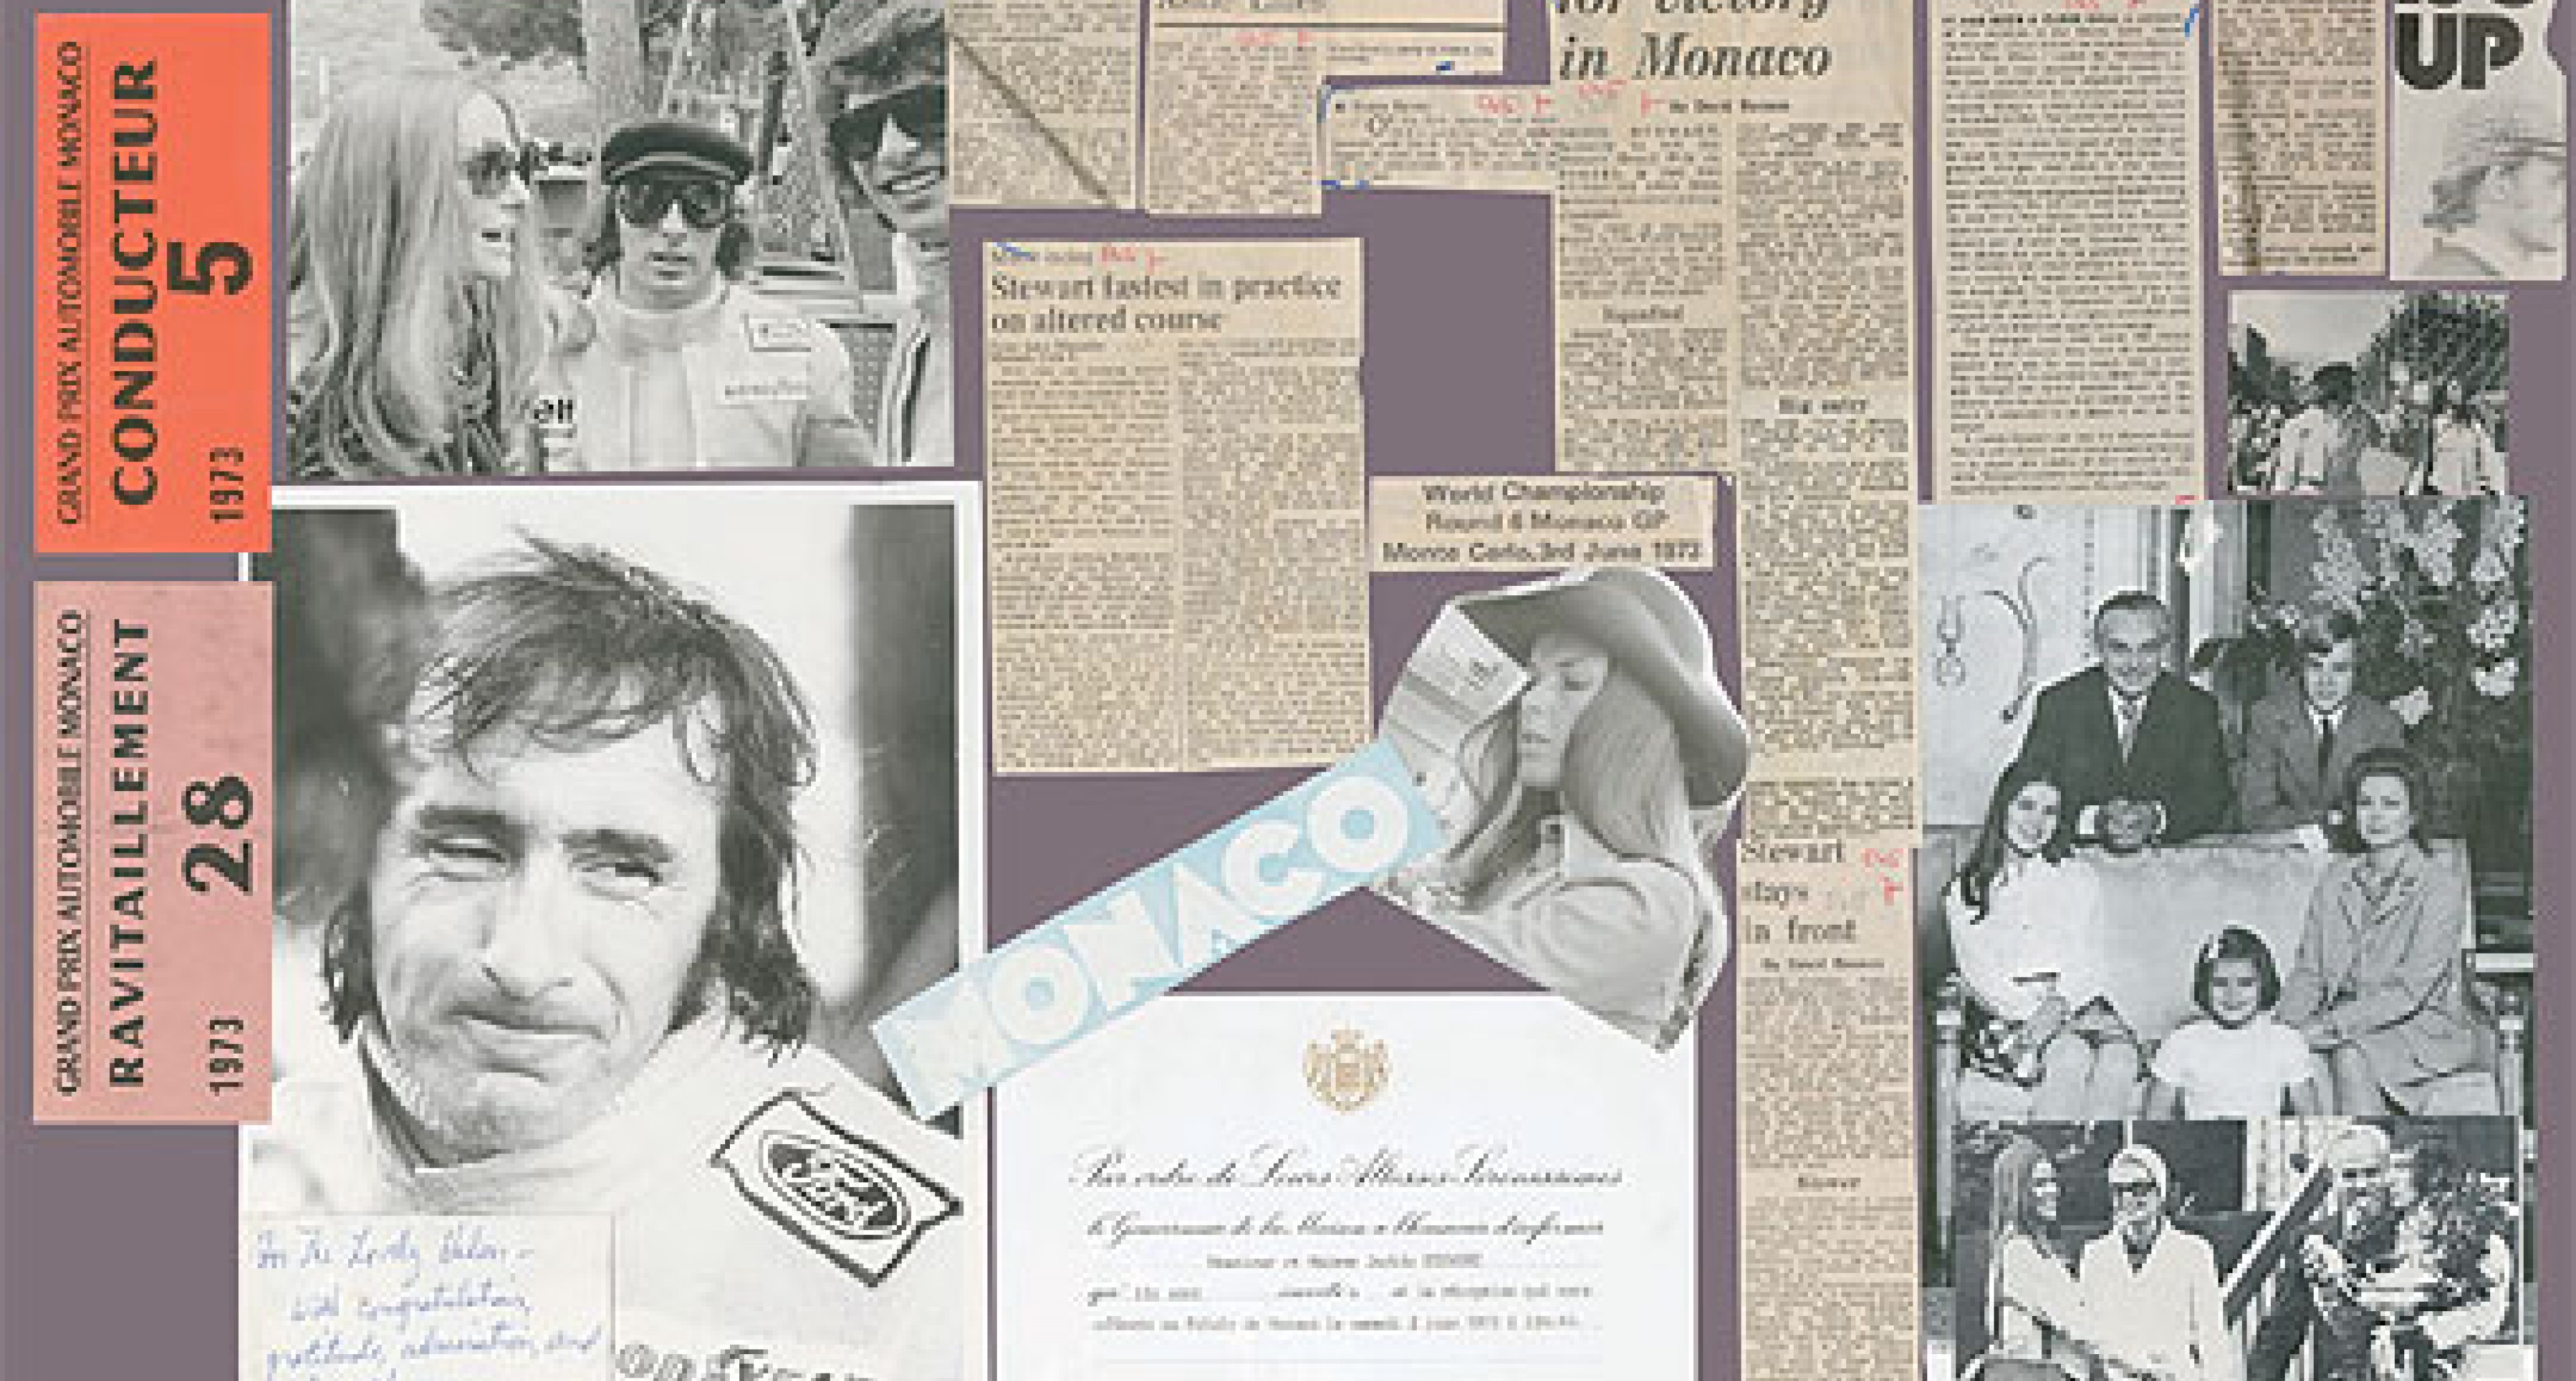 Sir Jackie Stewart: 'Collage', Family Life and the Mille Miglia